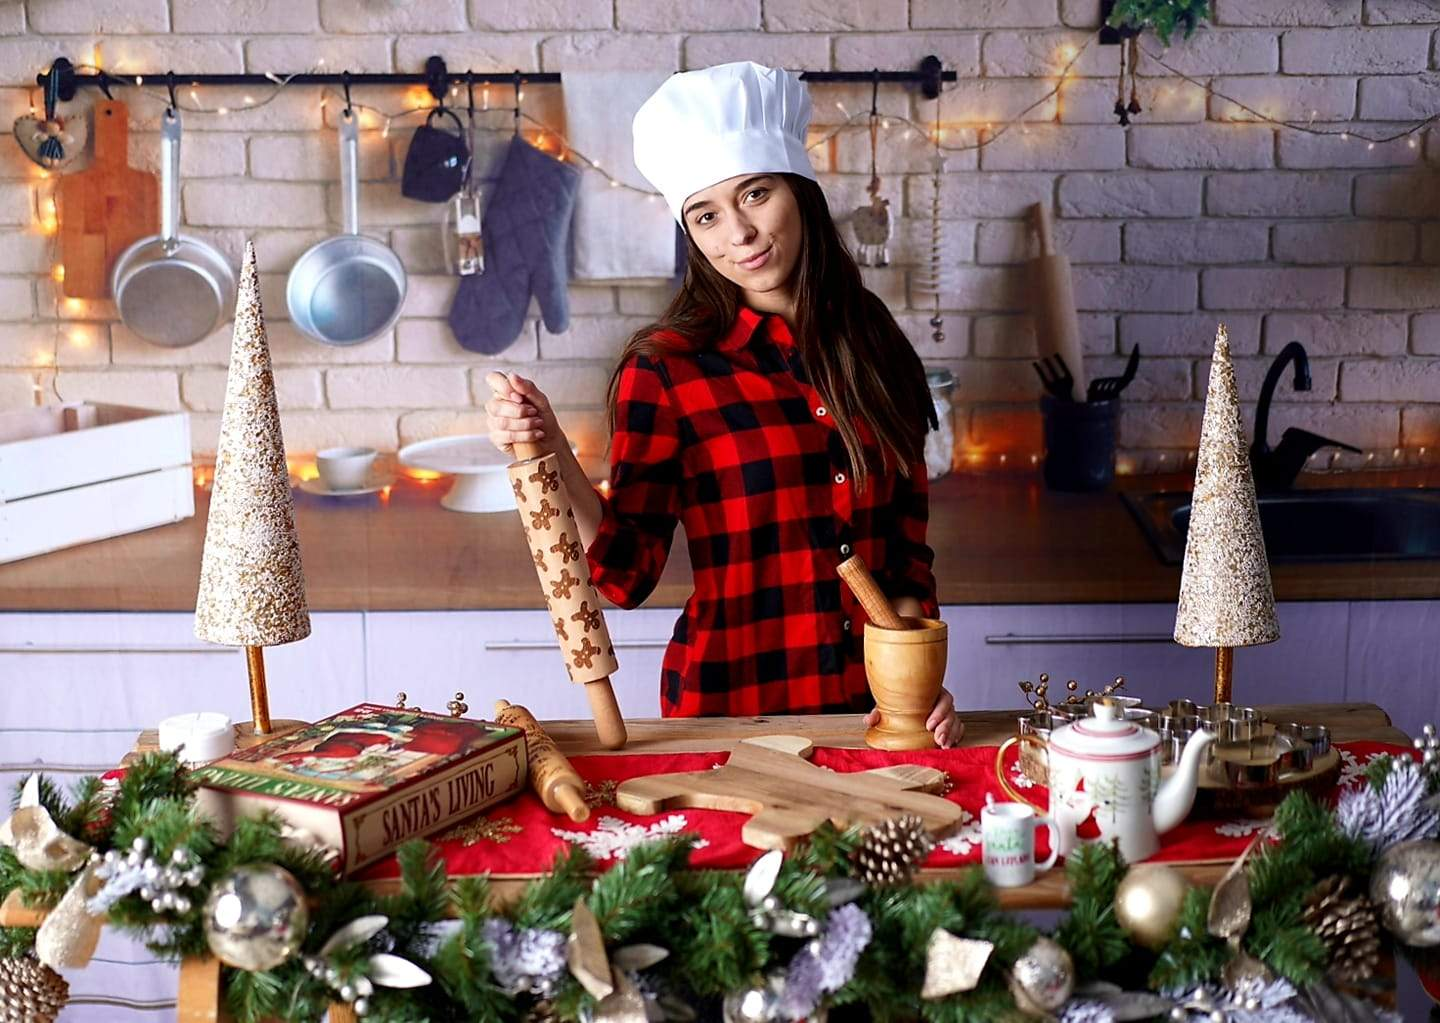 Load image into Gallery viewer, Katebackdrop£ºKate White Brick Wall Christmas Kitchen  Backdrop Designed By Jerry_Sina